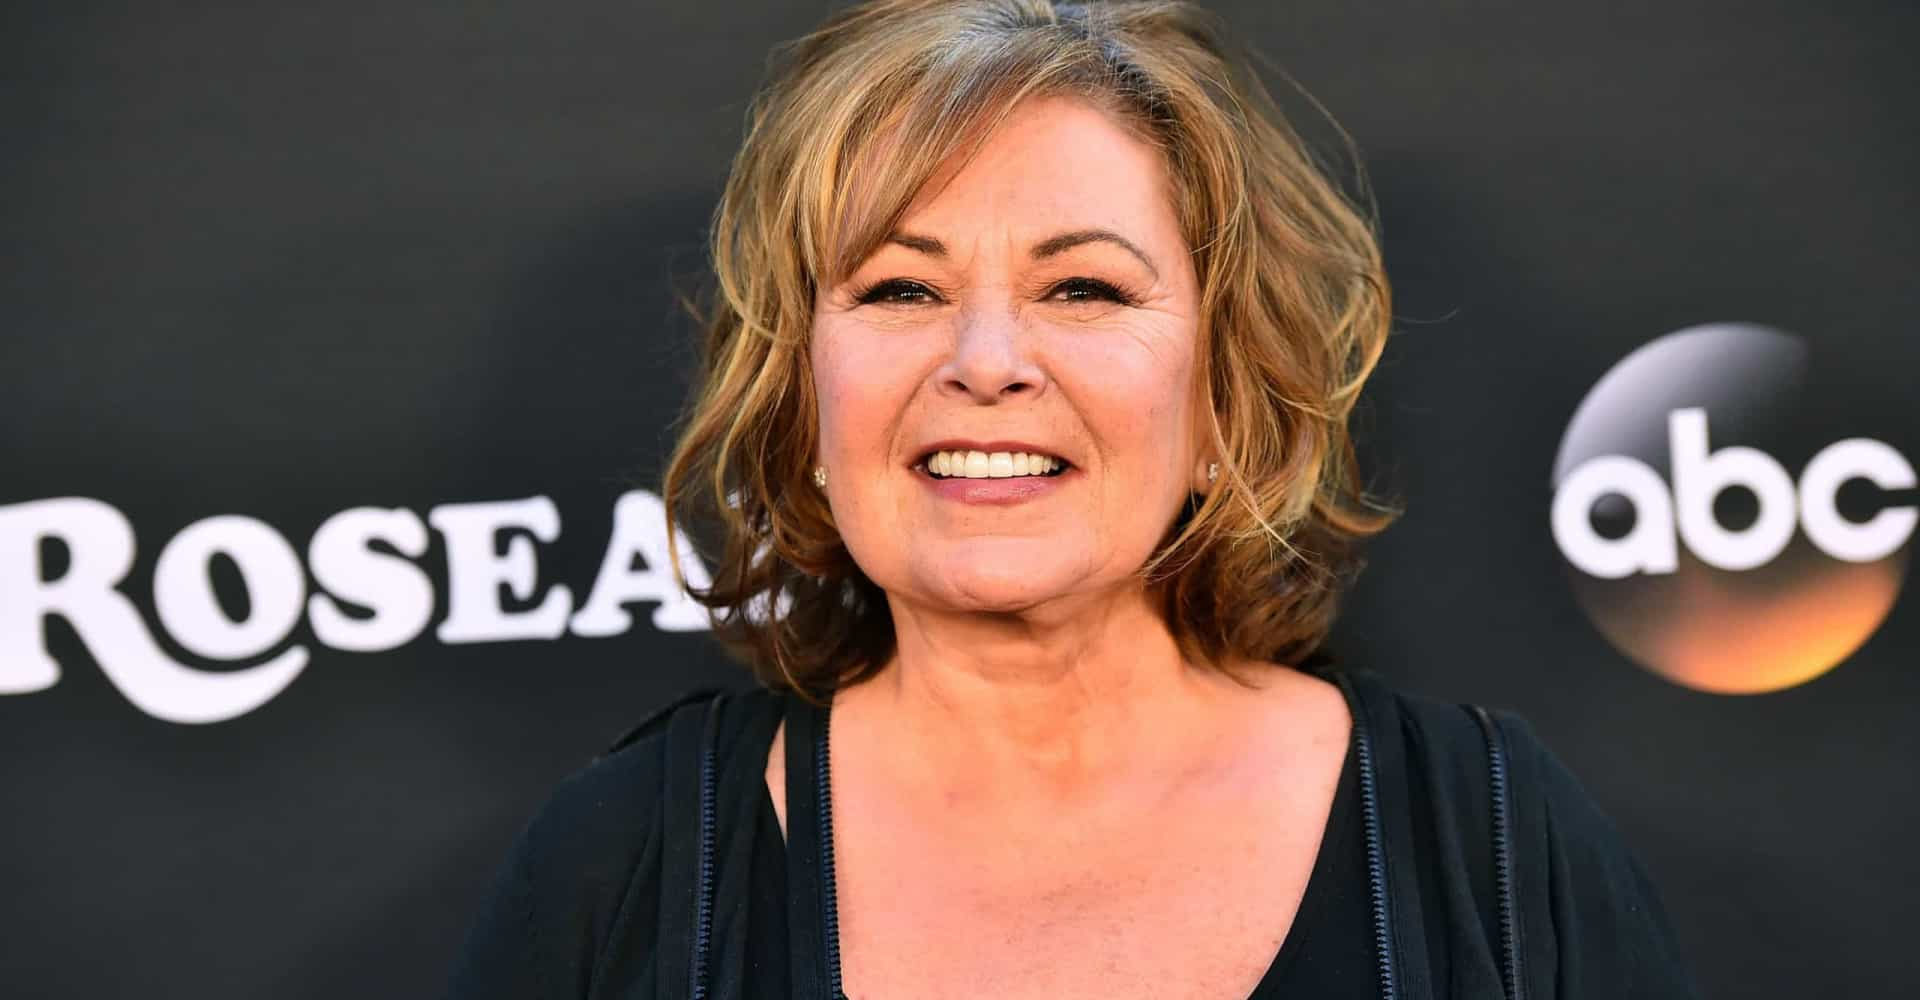 Roseanne and other celebs who were fired from hit TV shows